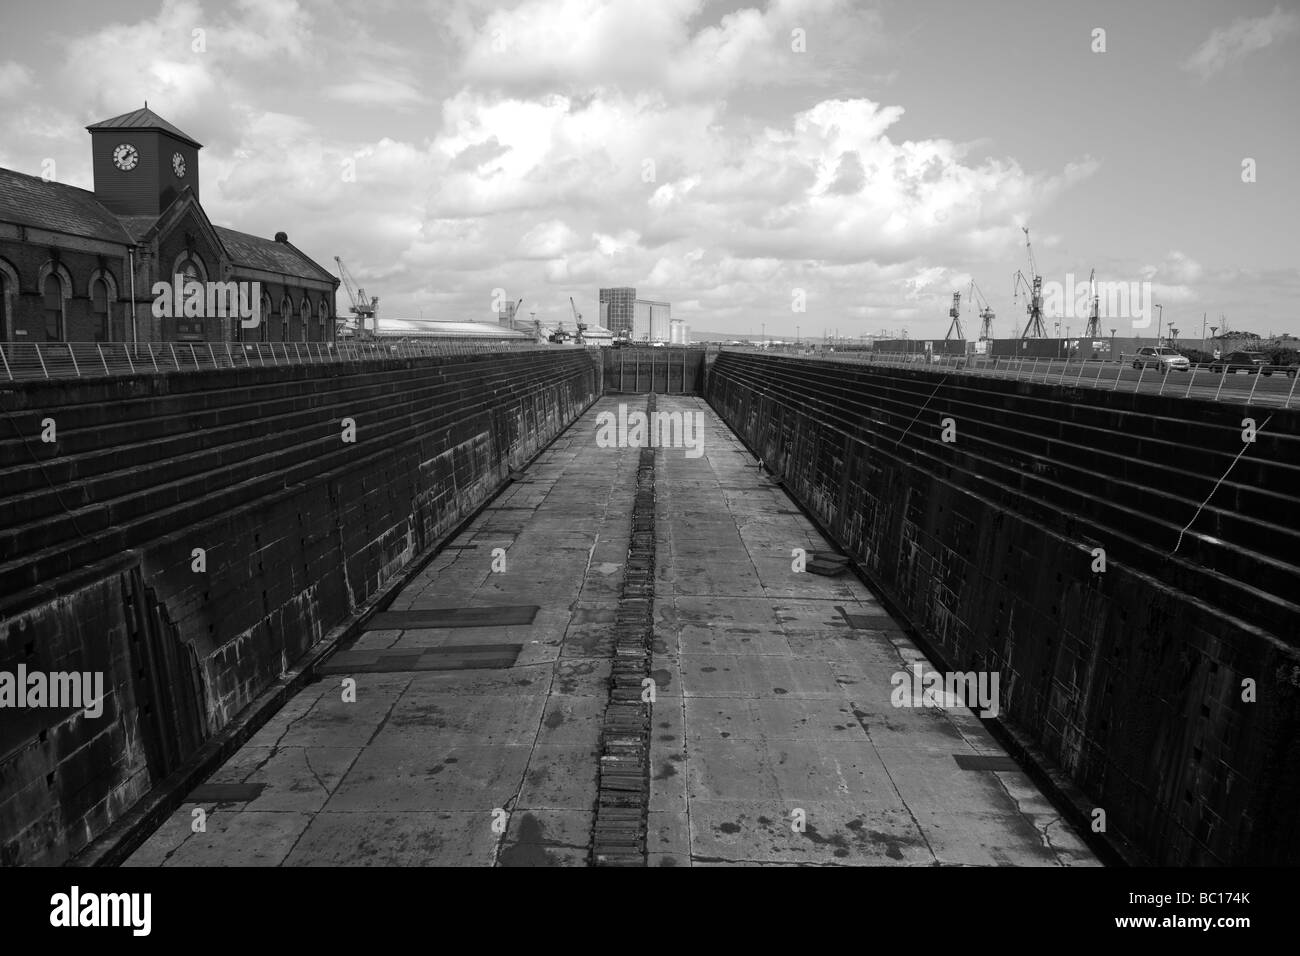 Dock Thompson in the Harland and Wolff Shipyard, Queen's Island, Belfast, Northern Ireland, United Kingdom - Stock Image